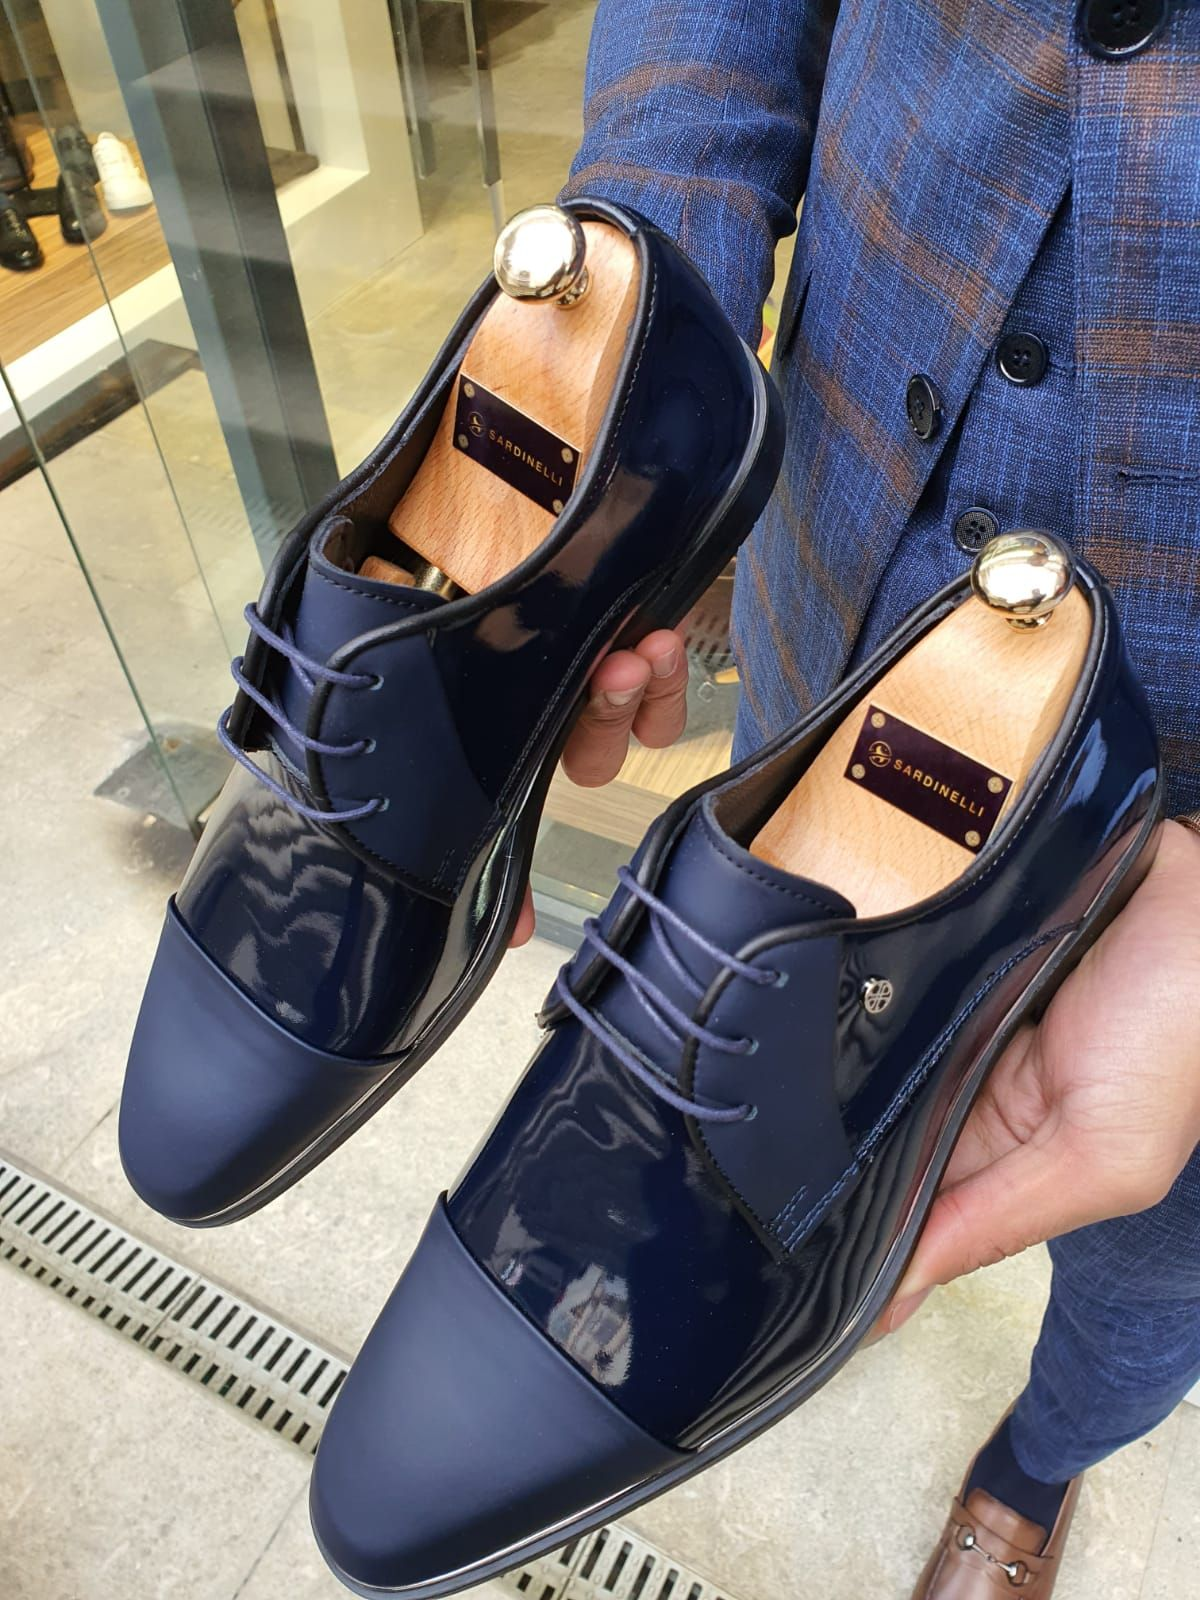 Buy Navy Blue Cap Toe Laced Blucher By Gentwith Free Shipping Leather Shoes Men Dress Shoes Men Men Shoes Formal [ 1600 x 1200 Pixel ]